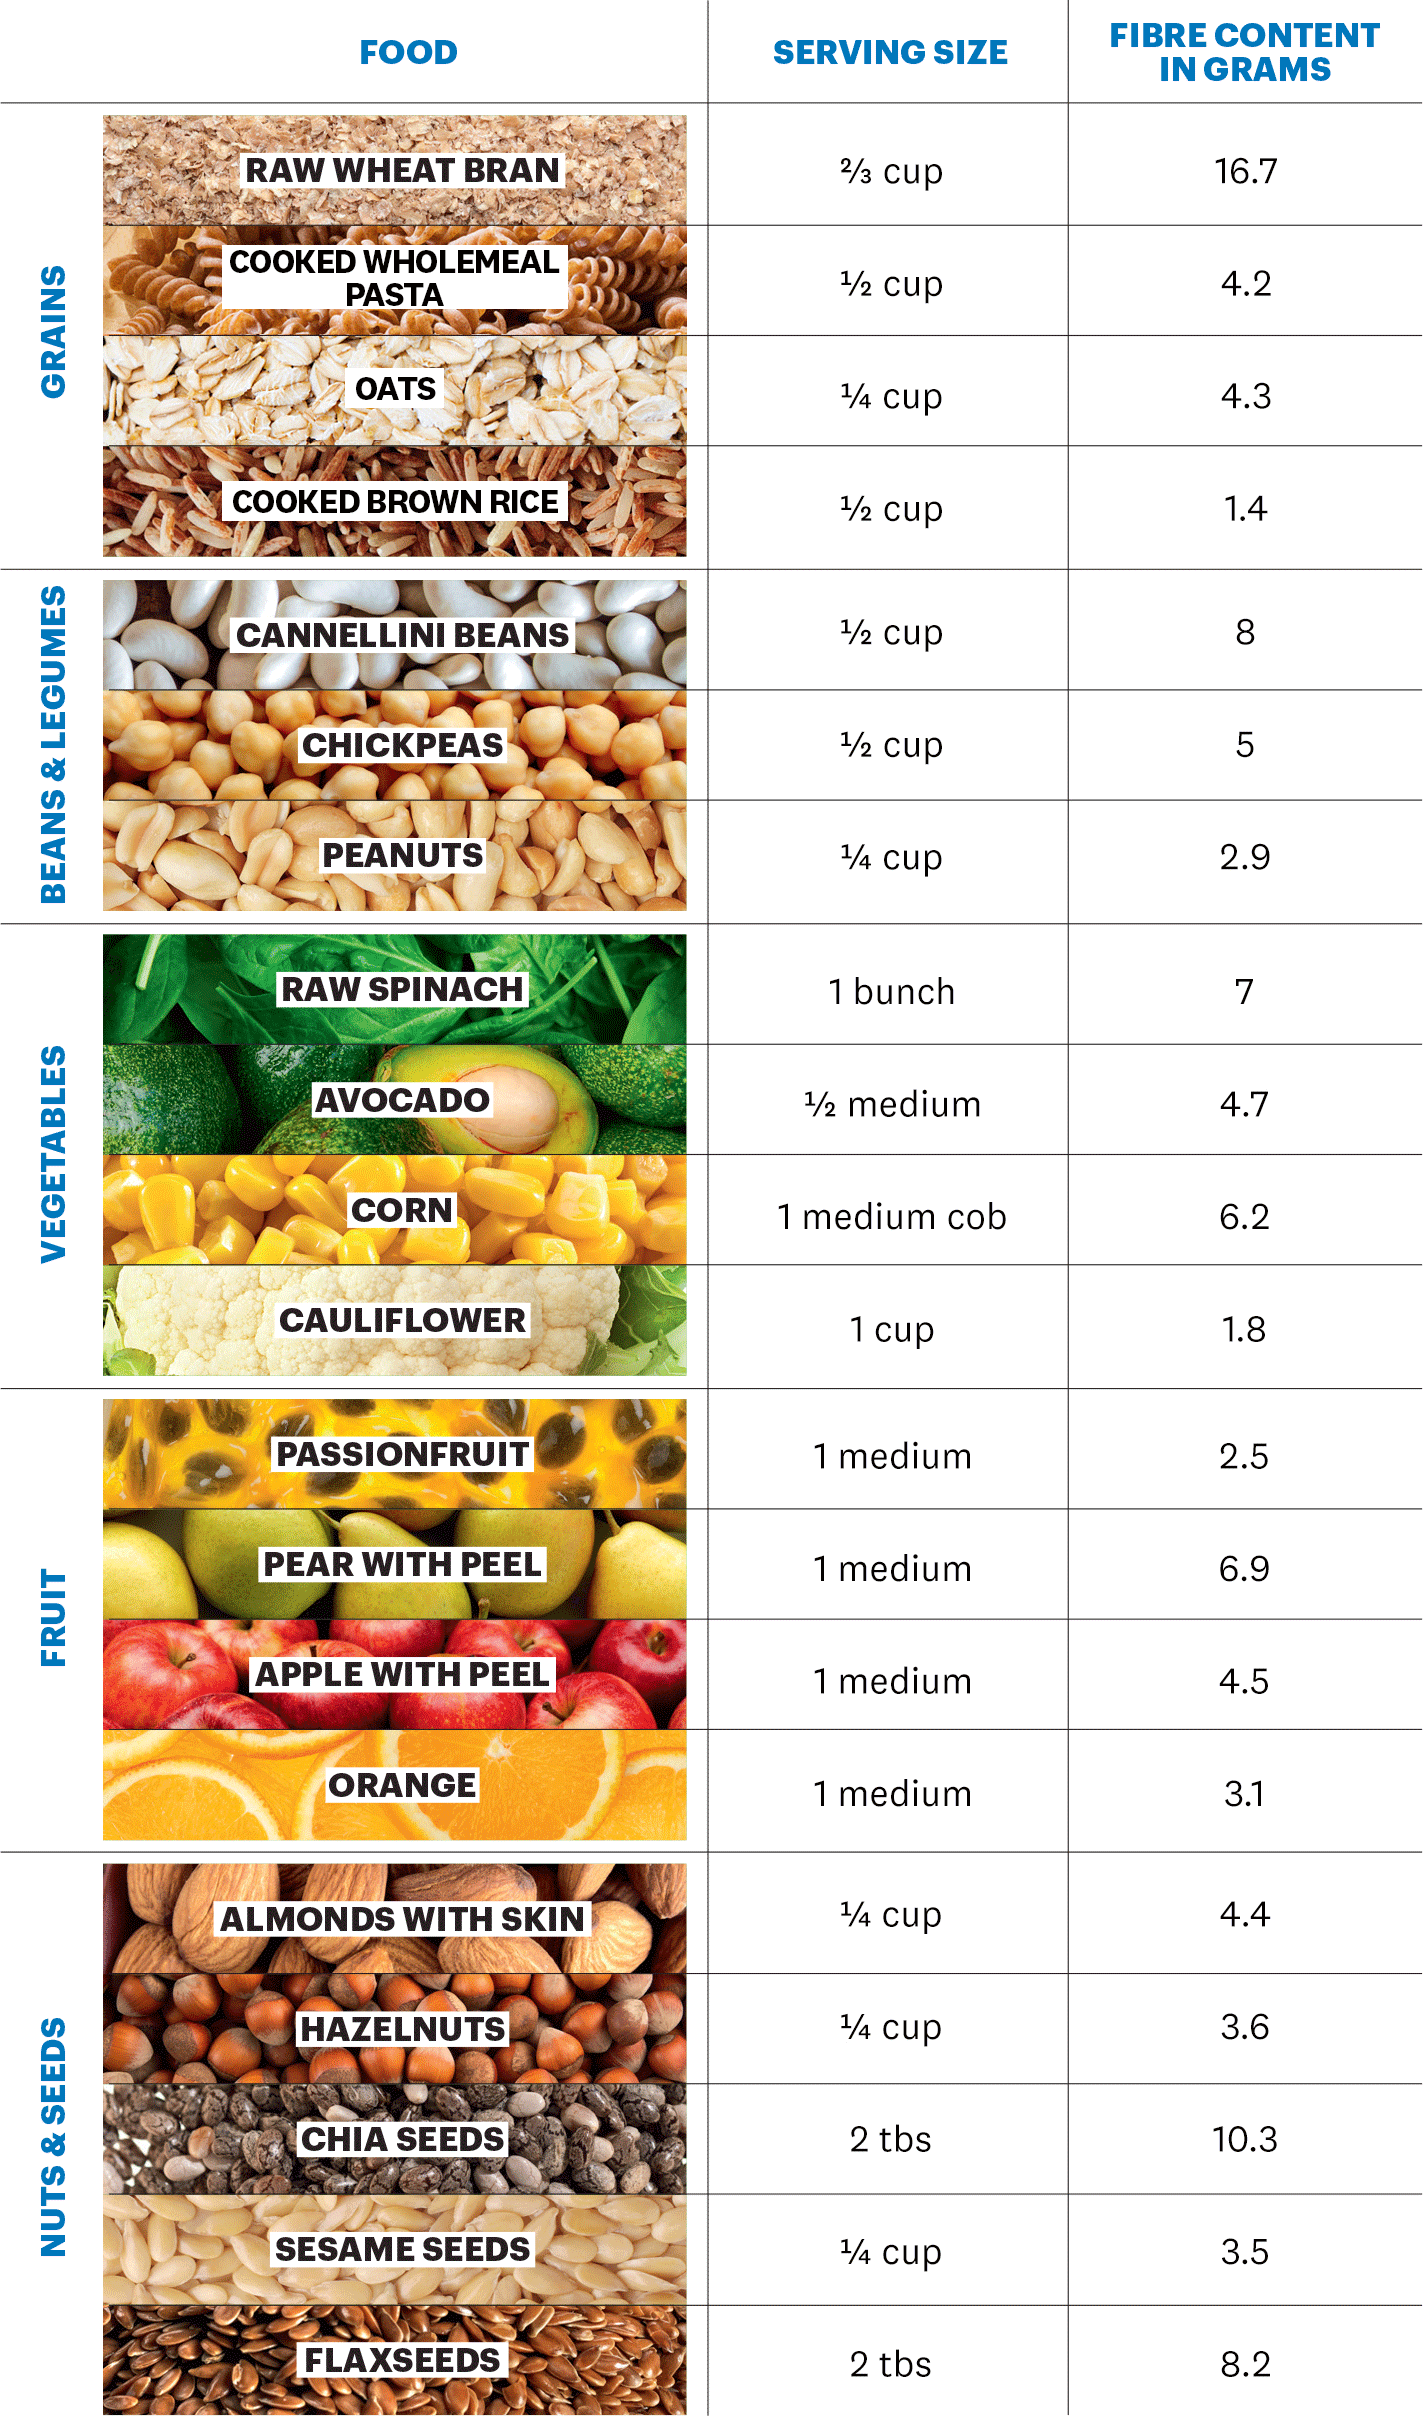 20 fibre rich foods including wholemeal pasta oats and brown rice